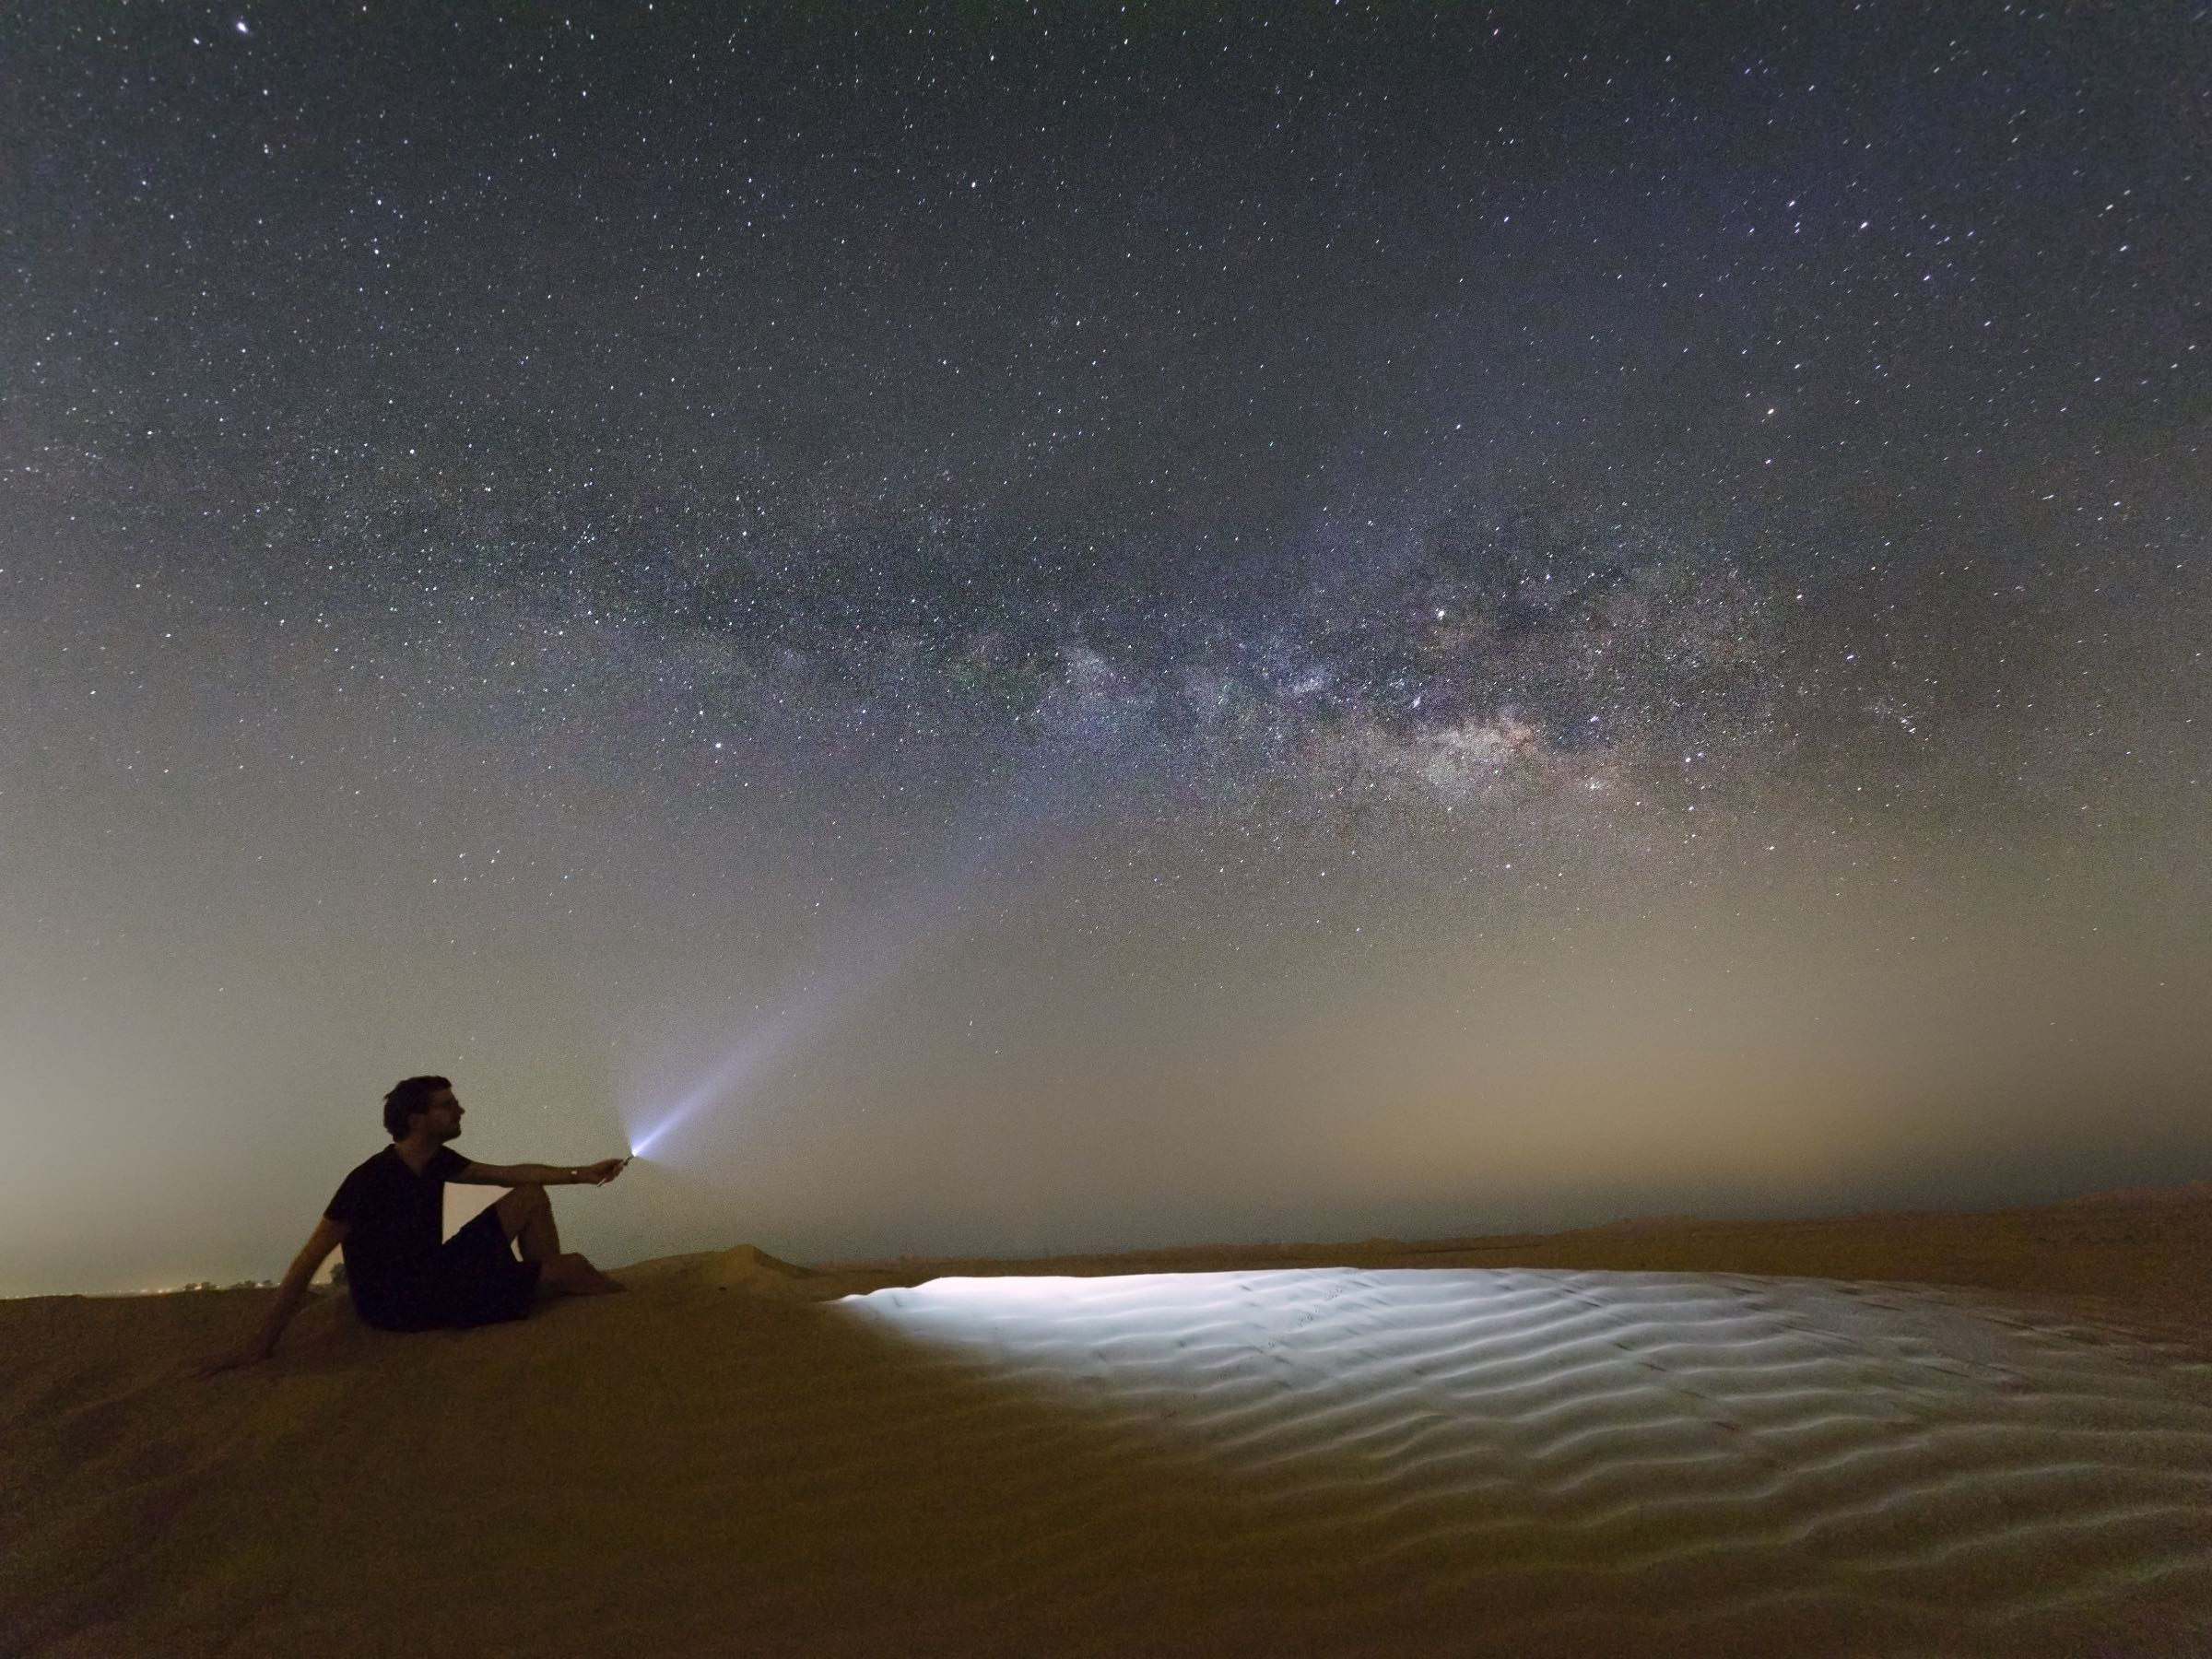 Dunes & Milky Way